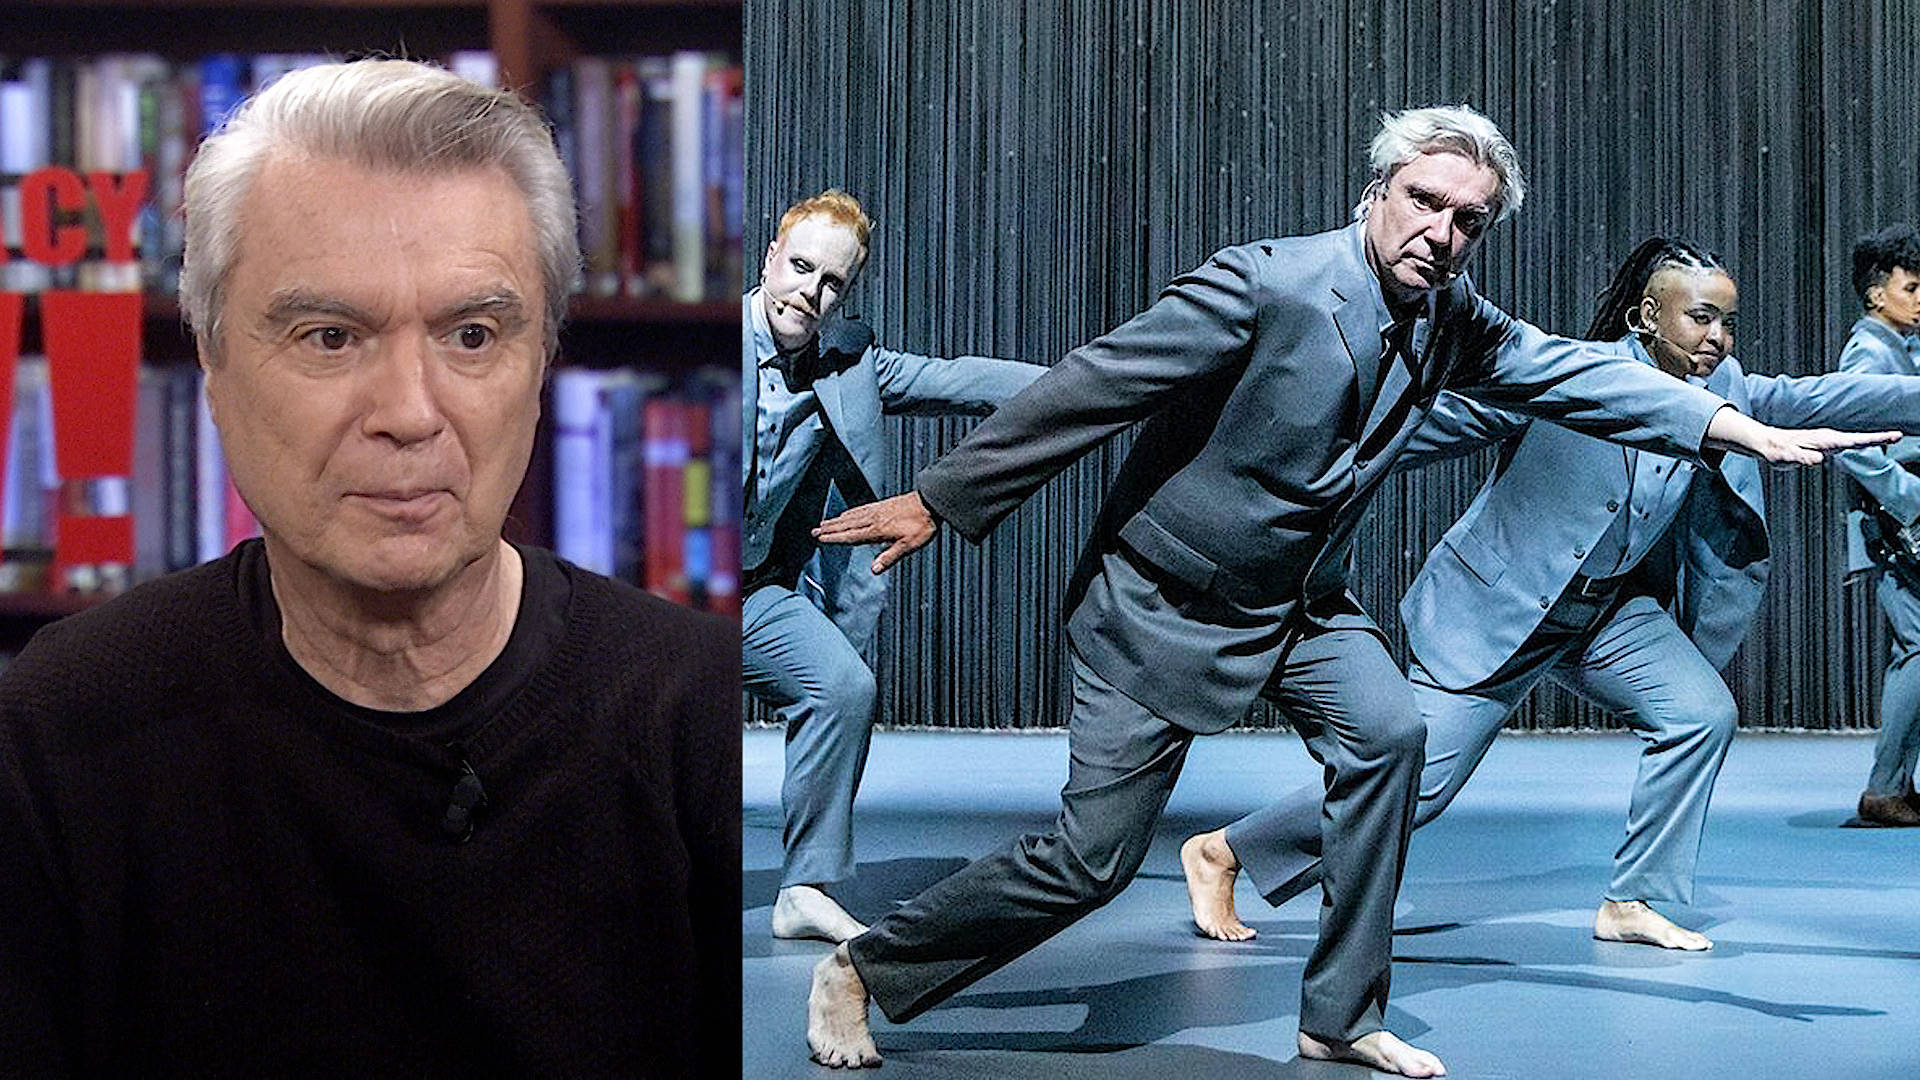 David Byrne on His Broadway Show